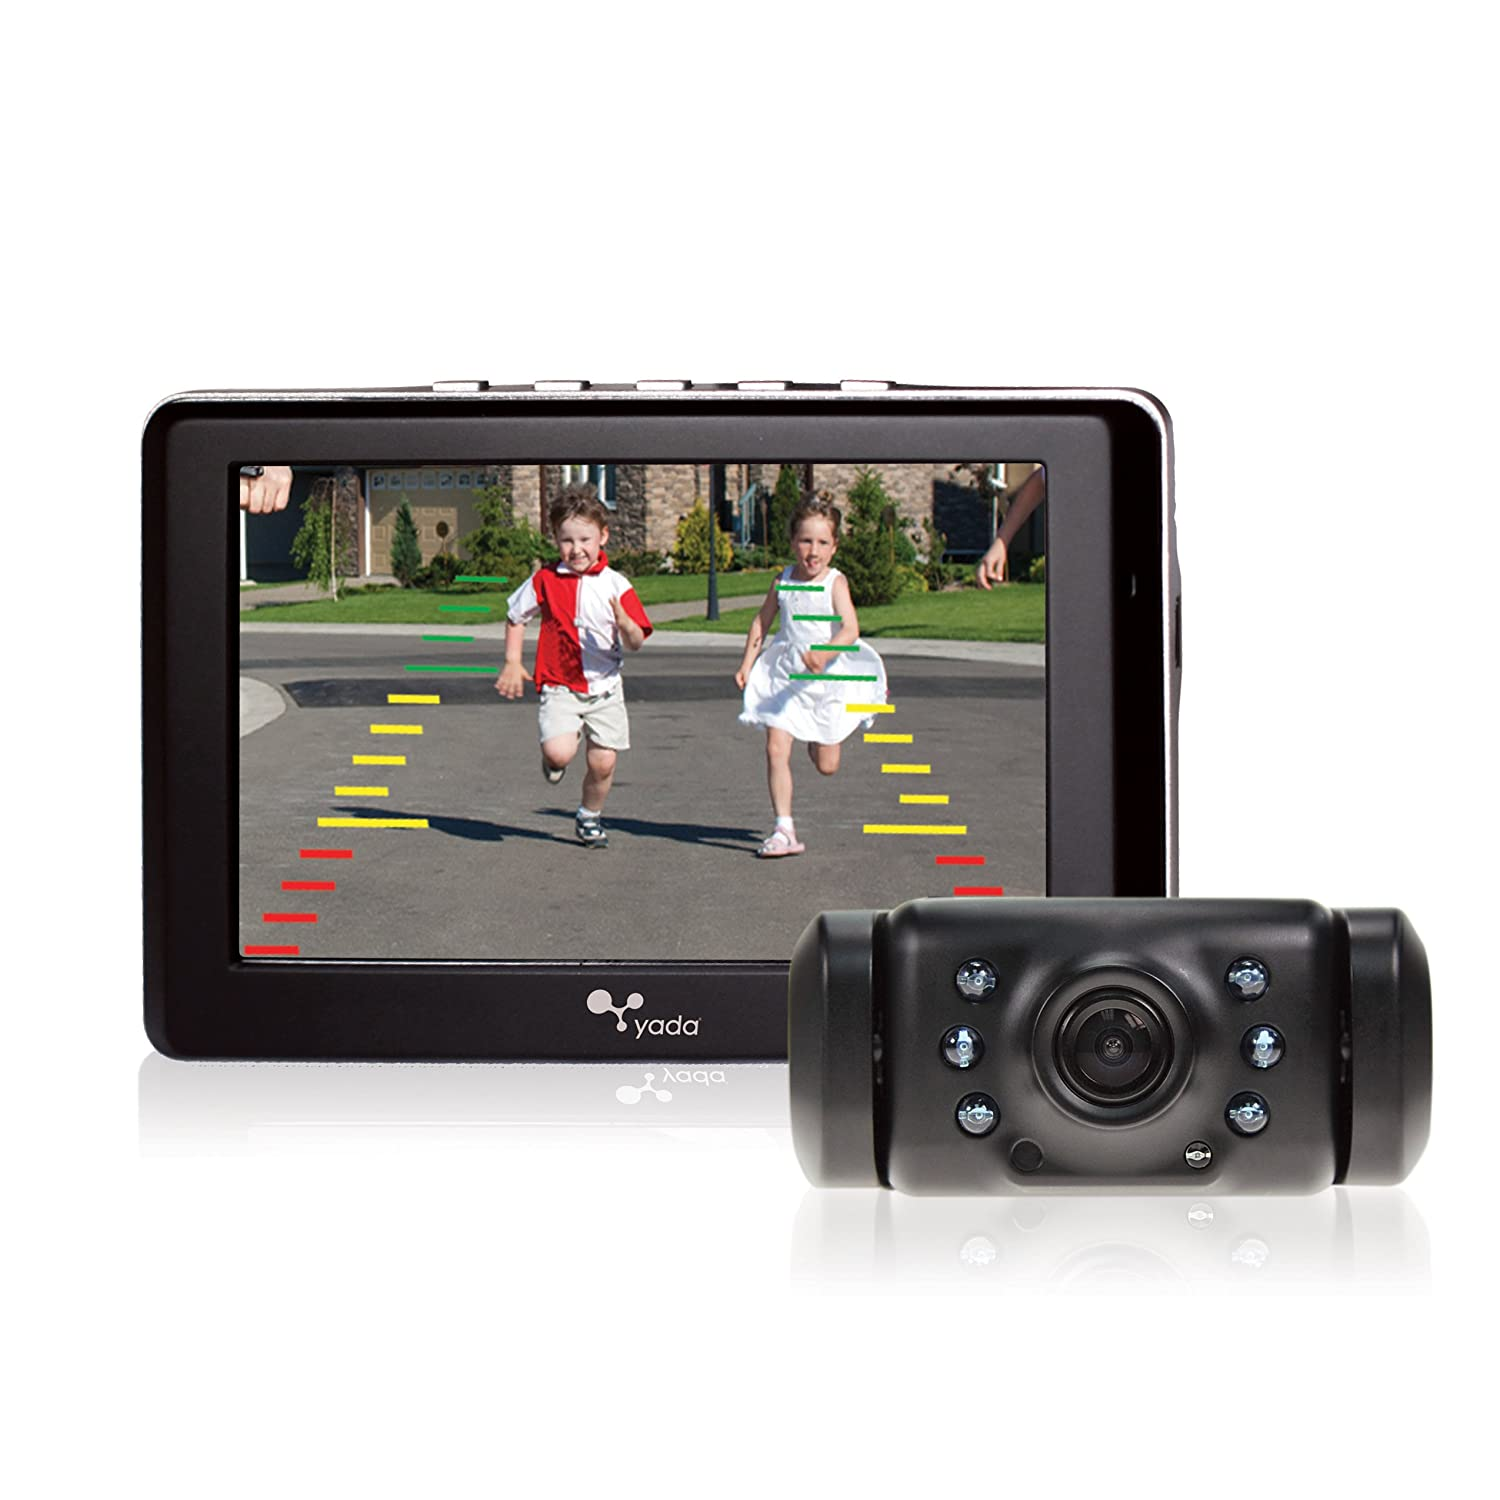 amazon com yada digital wireless backup camera with 4 3 dash rh amazon com yada backup camera wireless 5 monitor Yada Backup Camera Costco